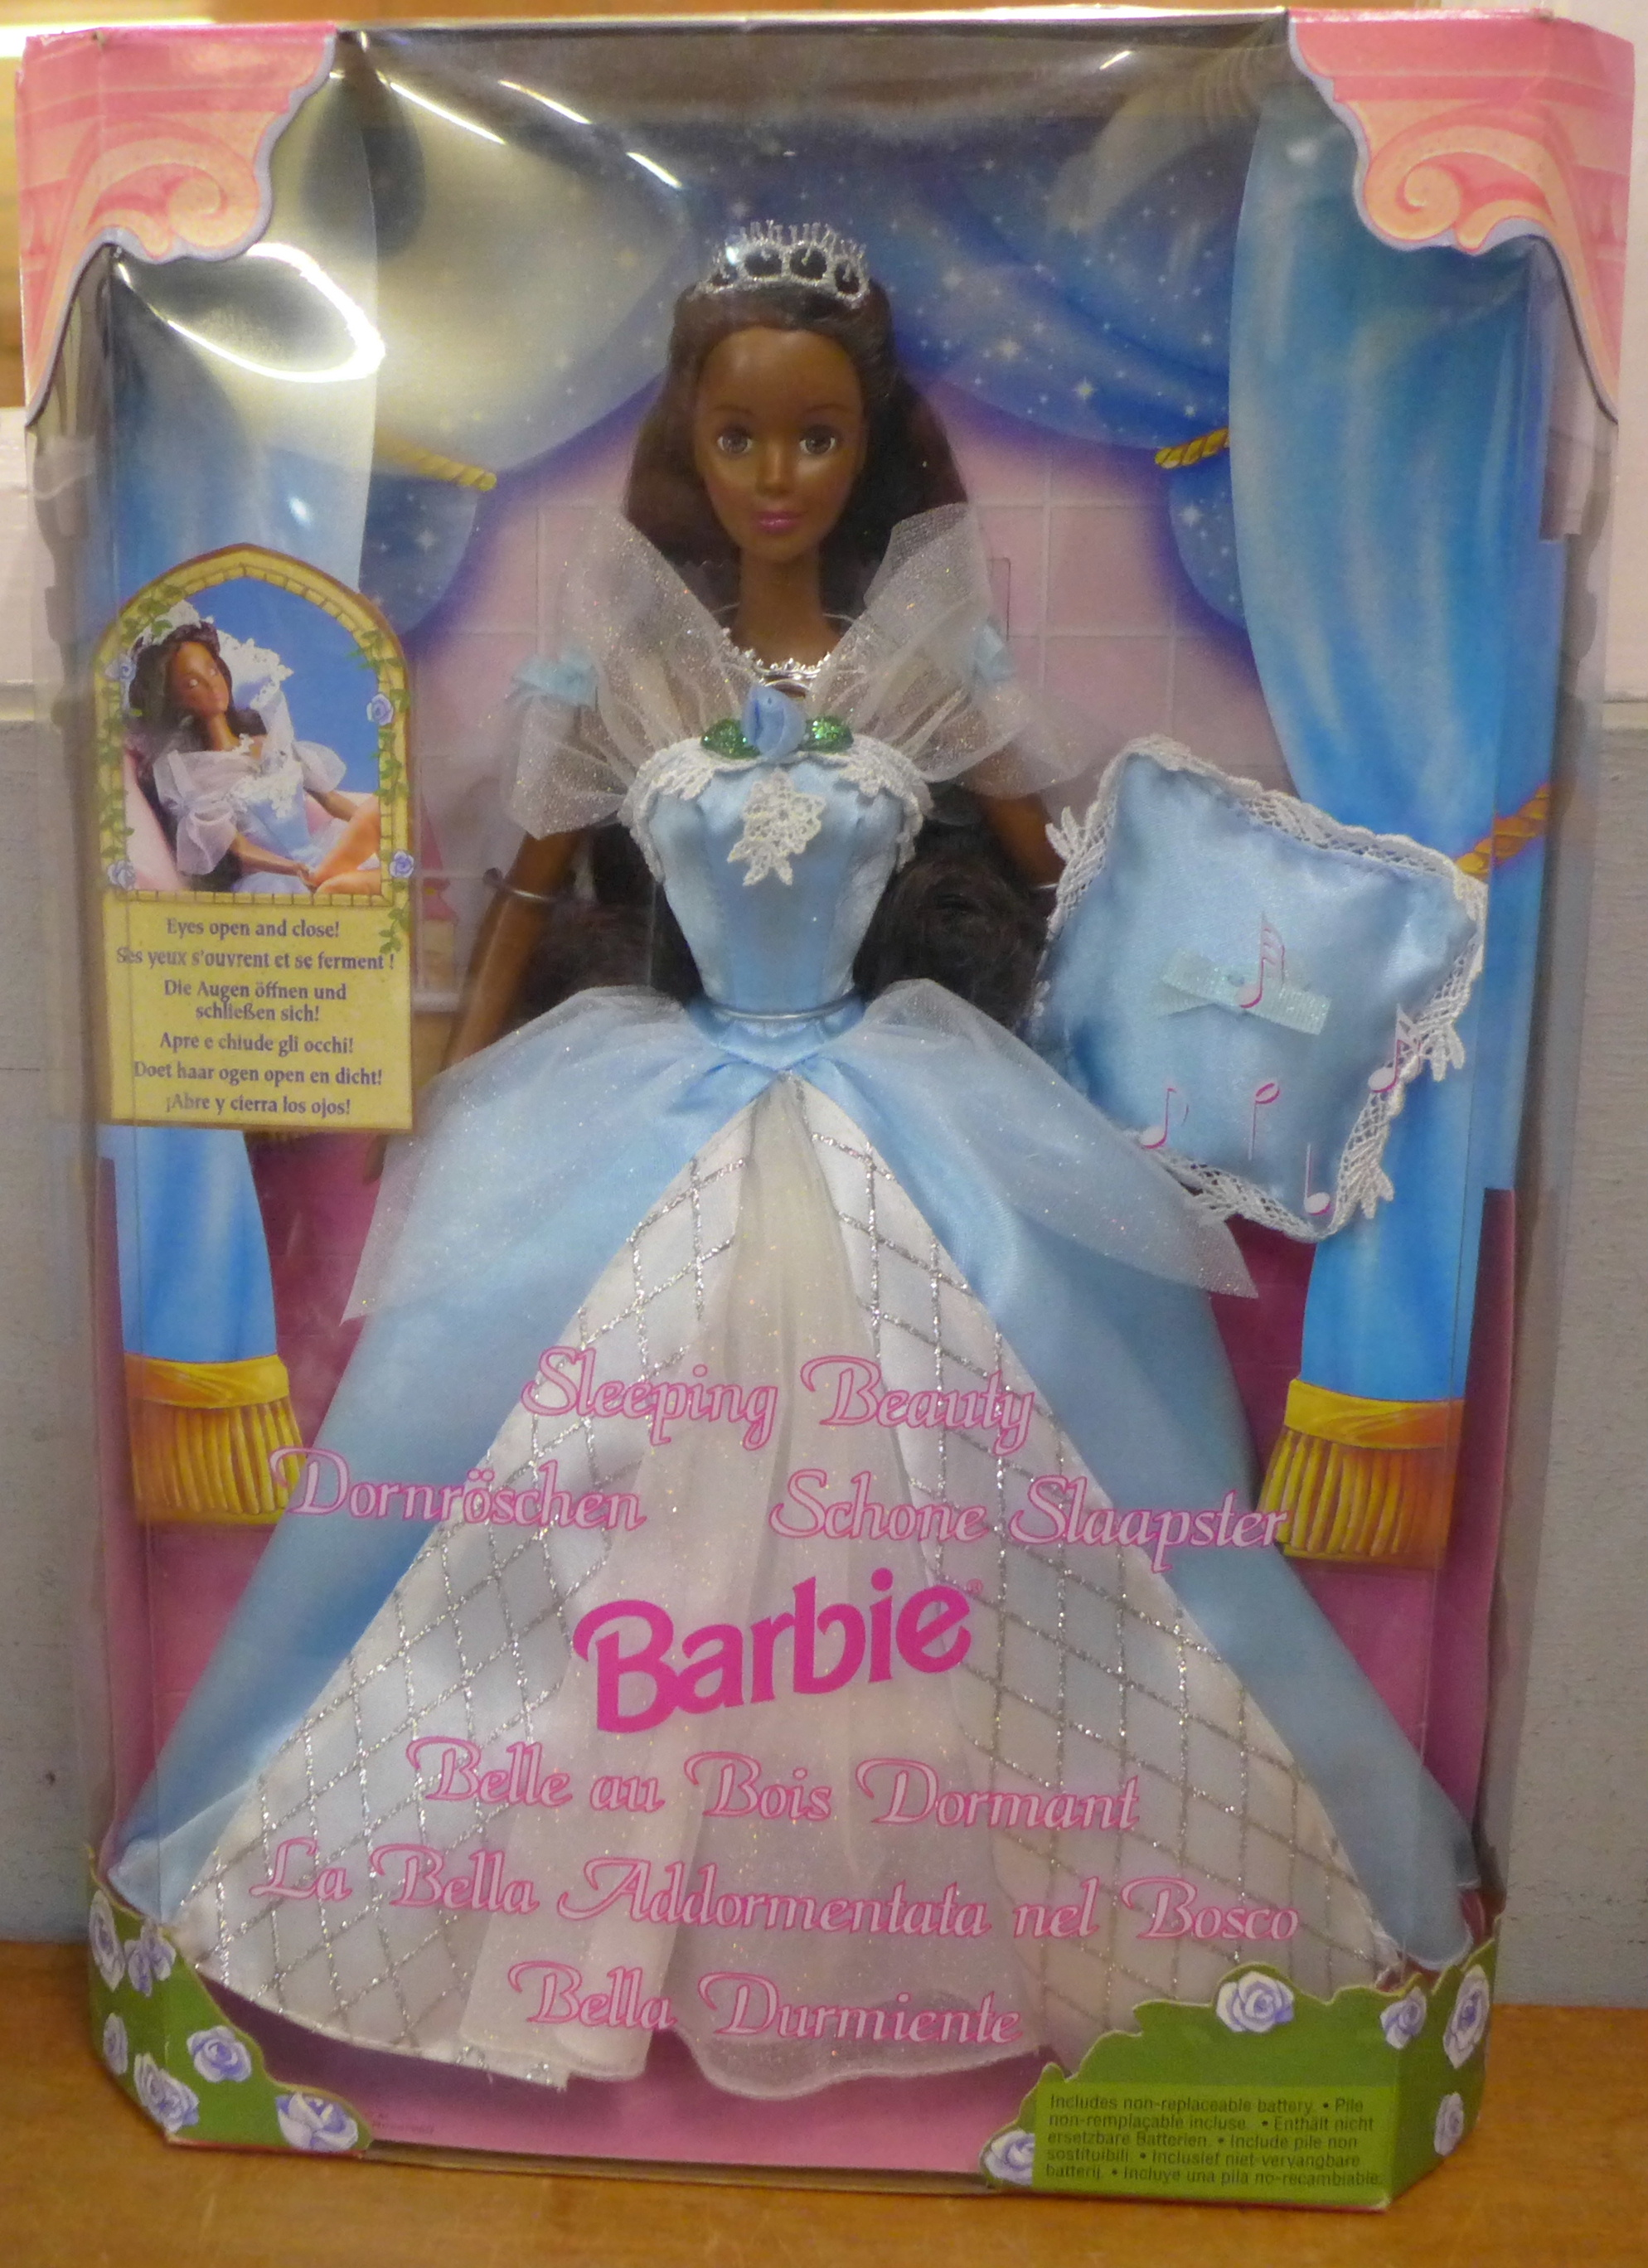 A Barbie doll, Black Sleeping Beauty, complete with box, 1998